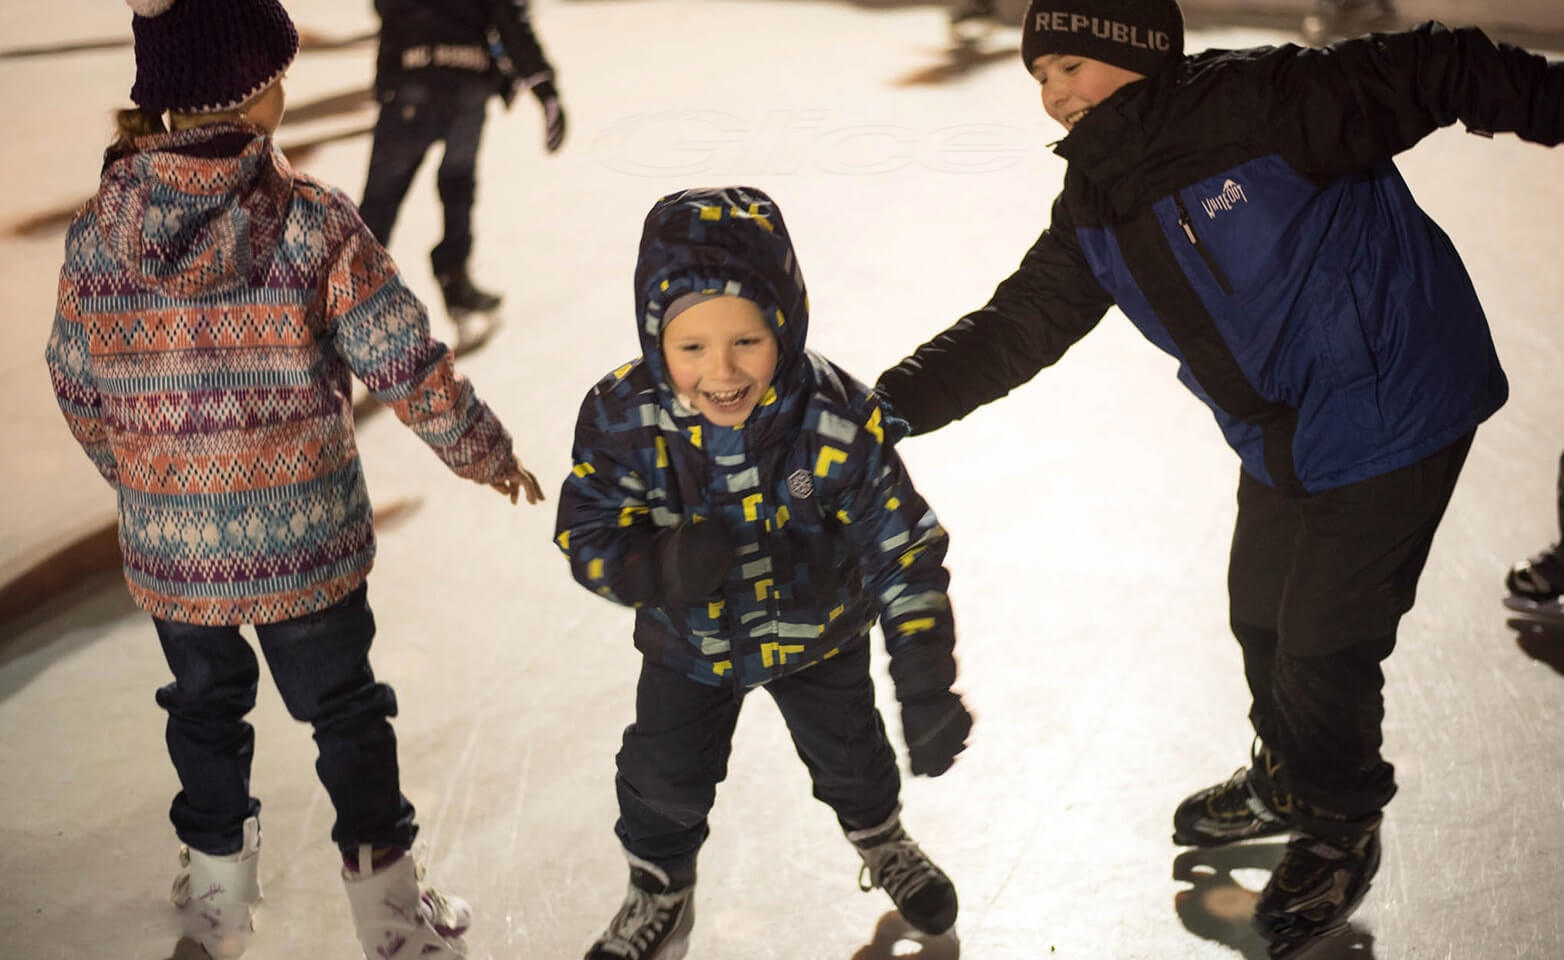 Kids having fun on an artificial Christmas rink